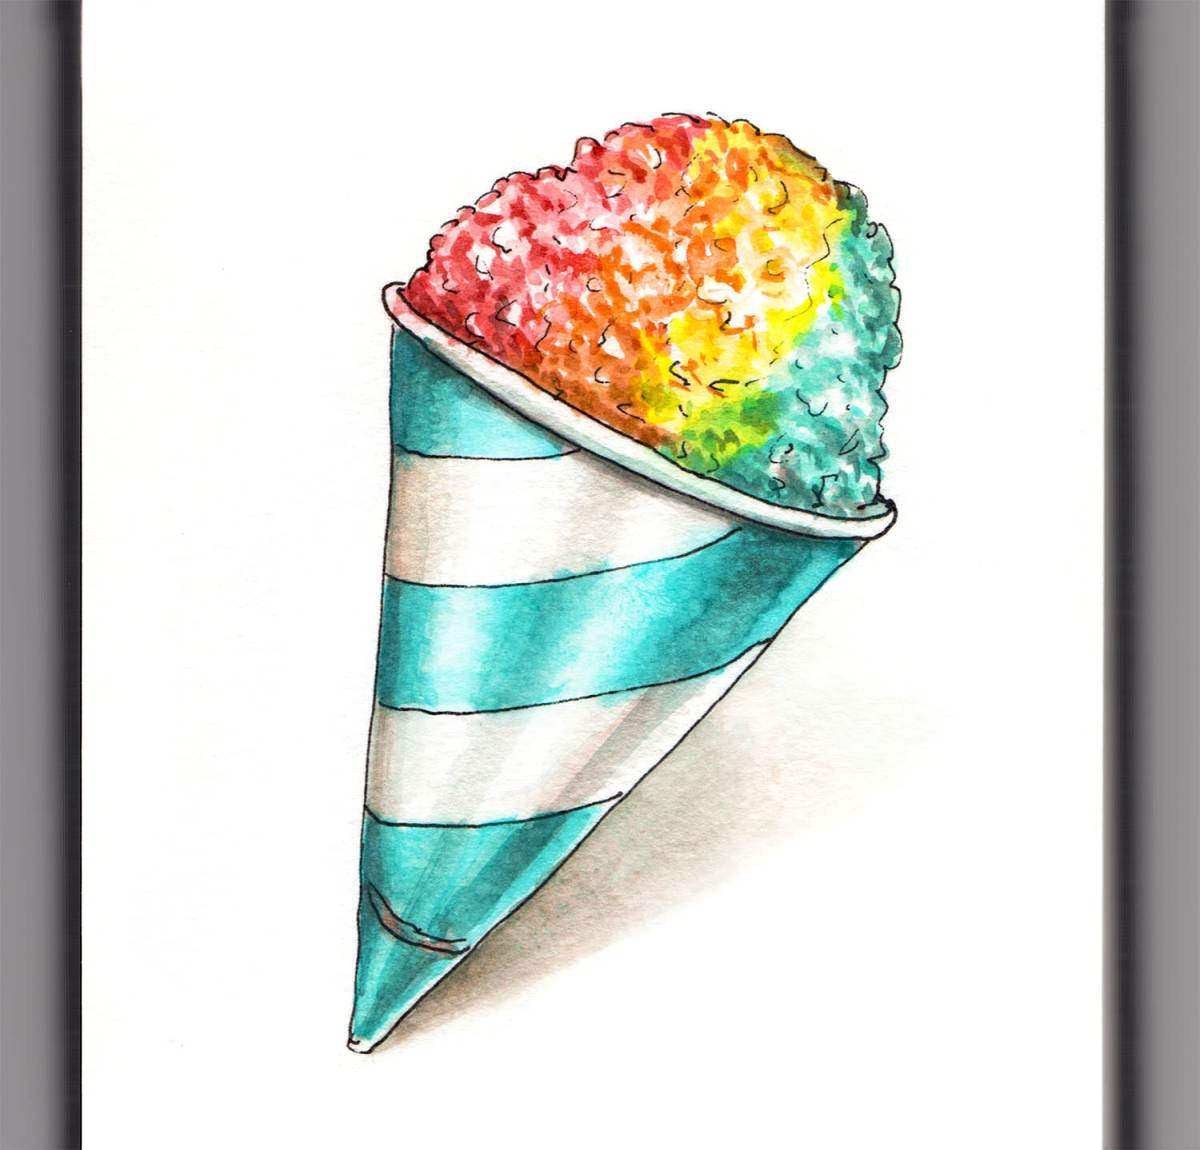 Day 29 - #WorldWatercolorGroup - Rainbow Snow Cone - #doodlewash